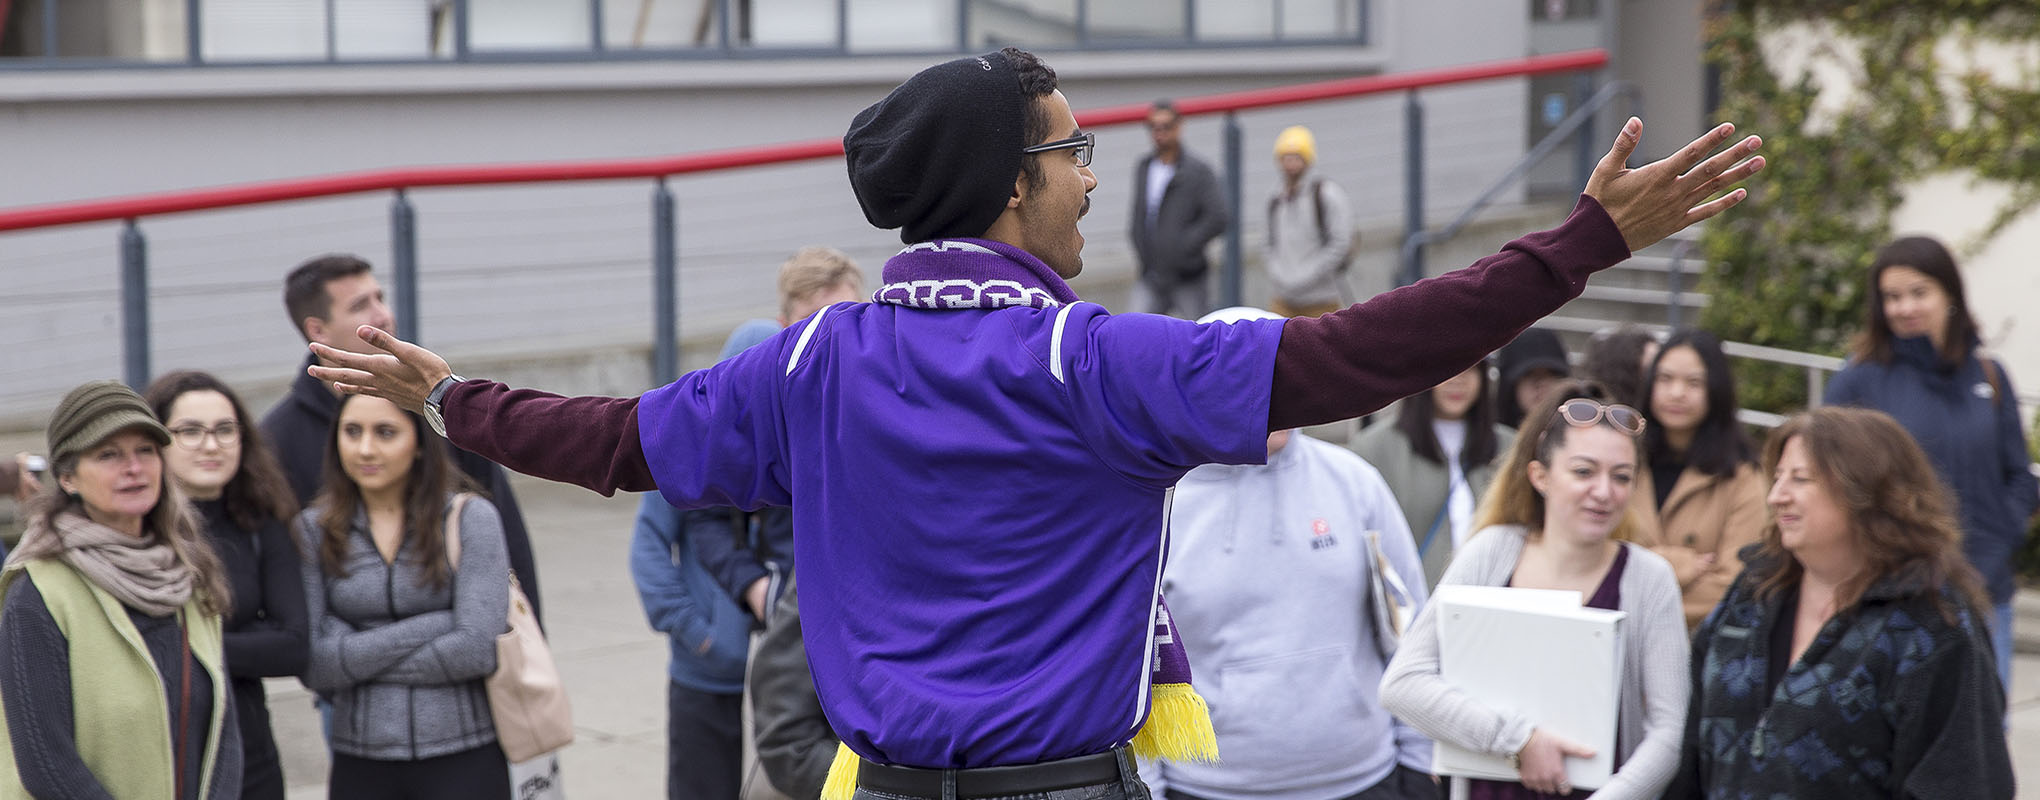 SFSU student leading prospective students on a tour